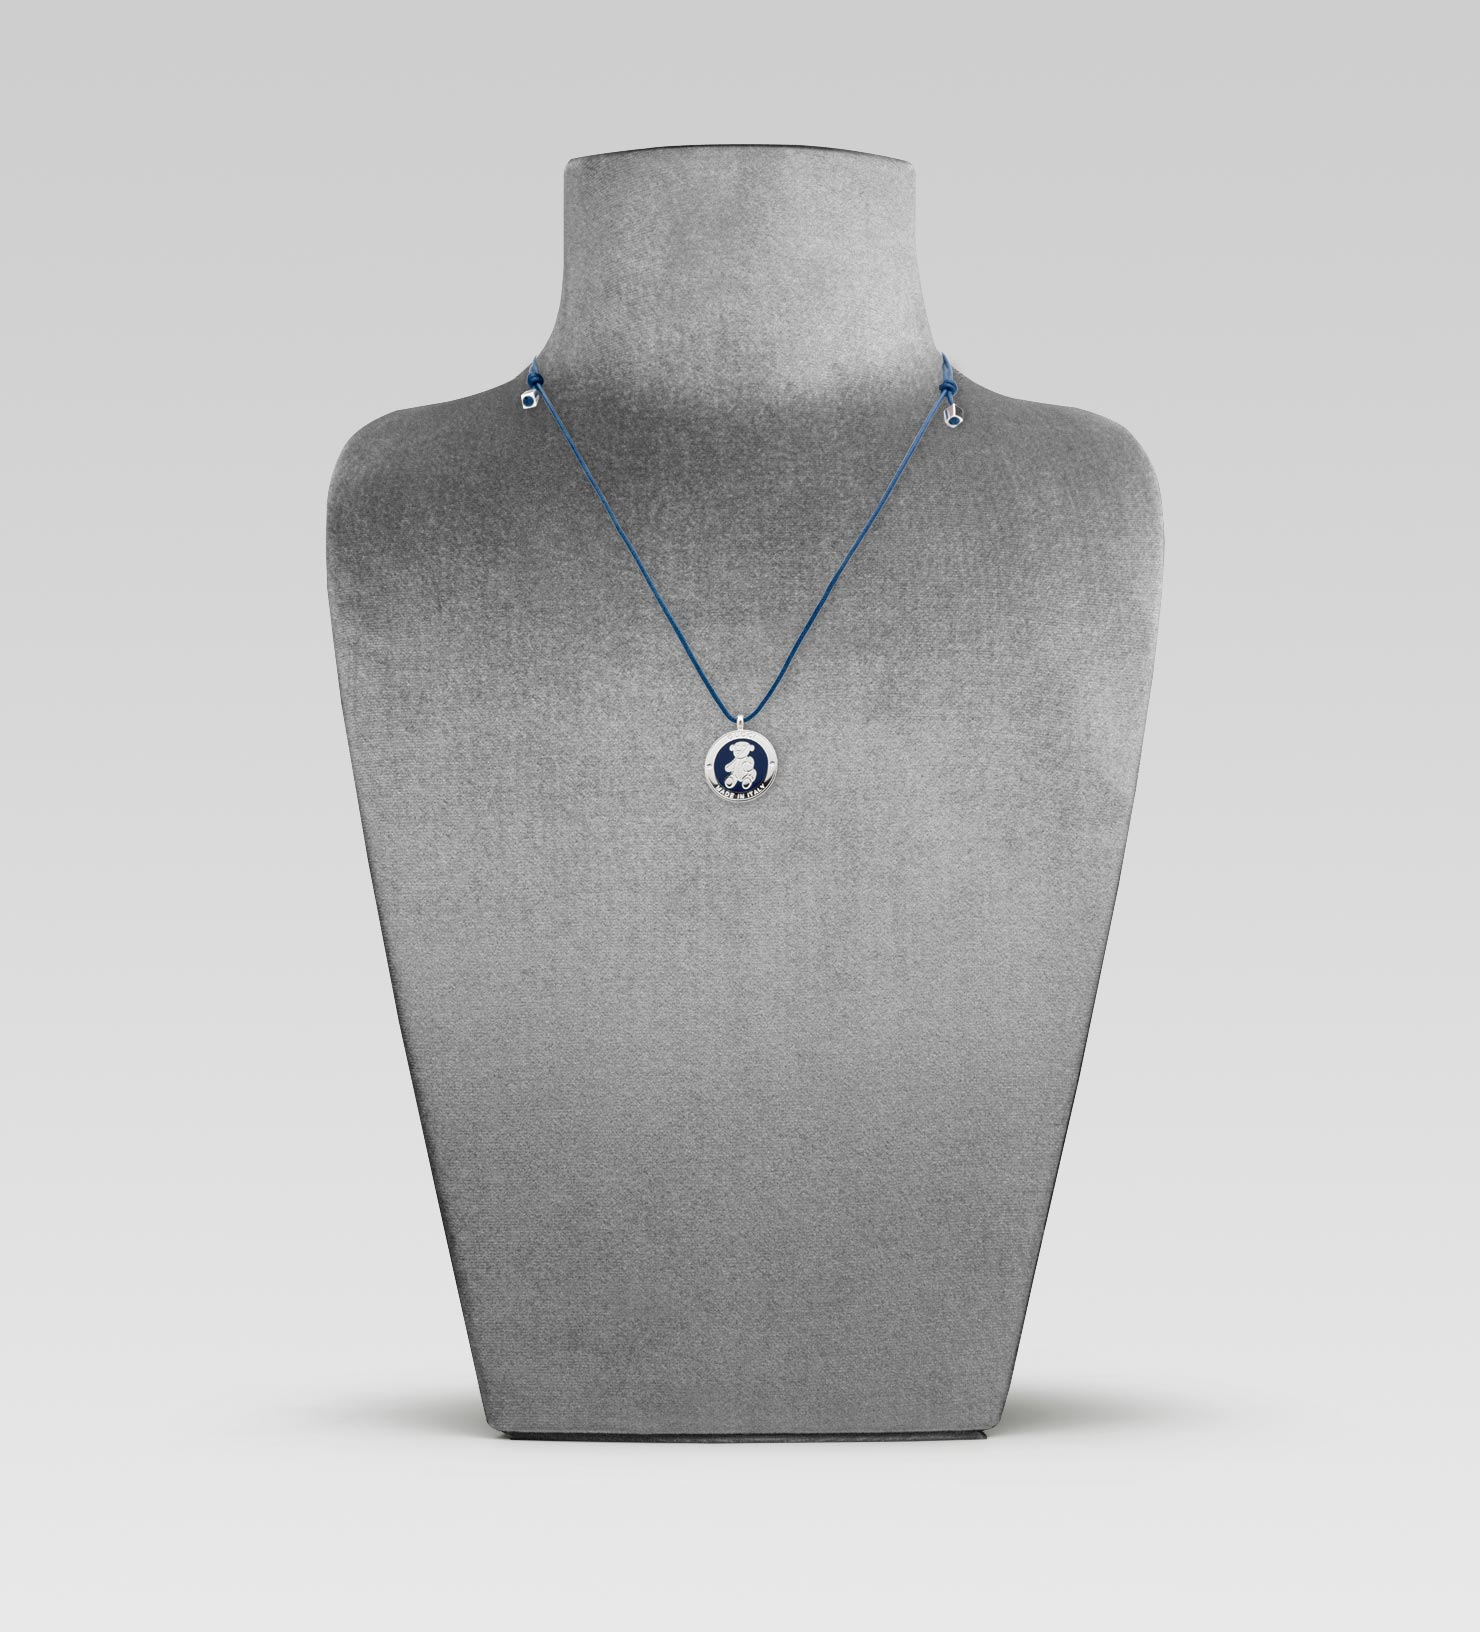 b4df25396 Gucci Necklace with Teddy Bear Medal in Blue - Lyst